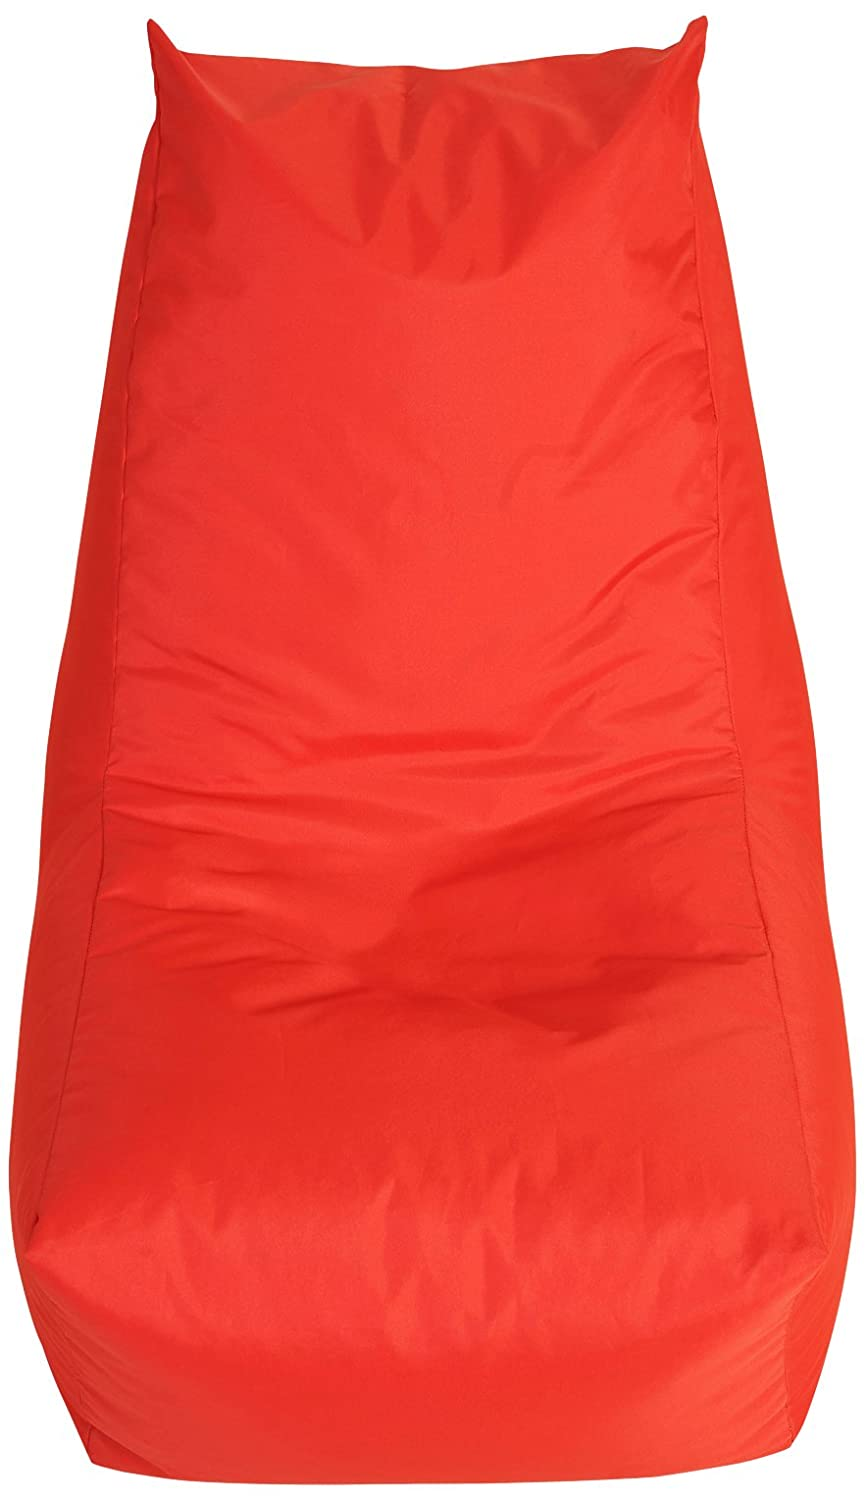 Water Resistant Bonkers Round About Bean Bag in Red with Beans Filling